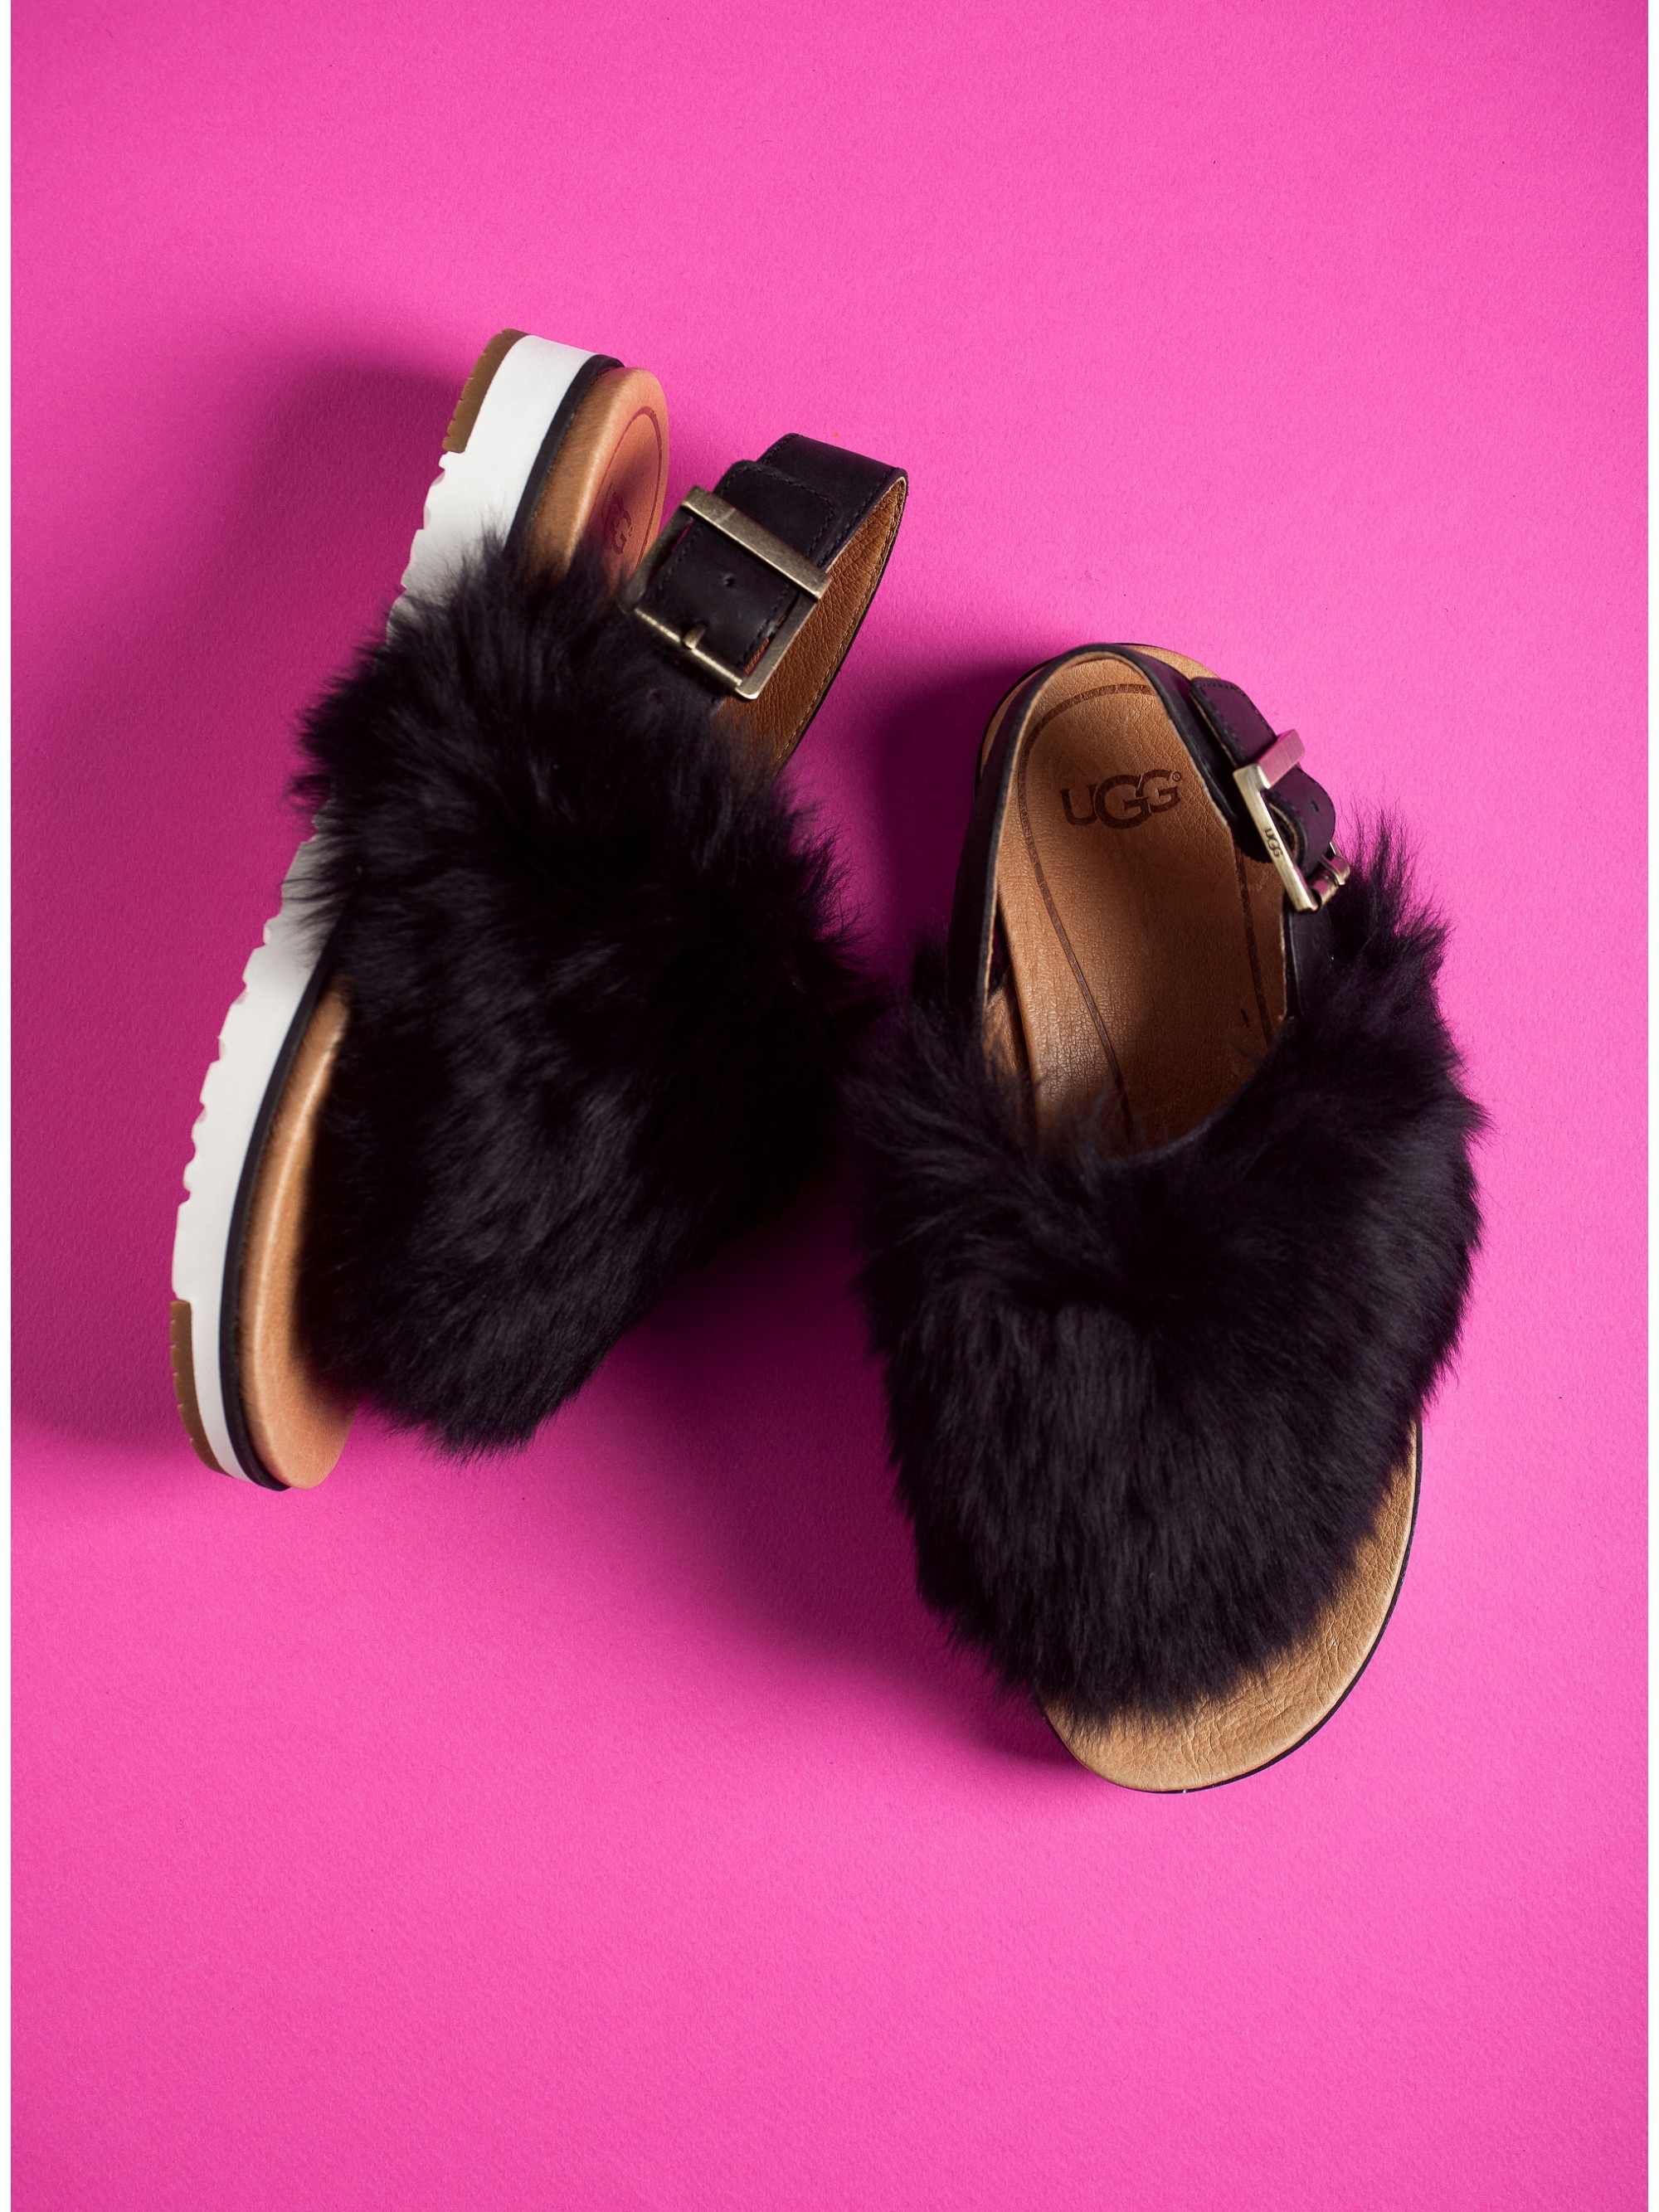 6e8f3ab2082 Ugg Australia Sheepskin Sandals Holly-Black